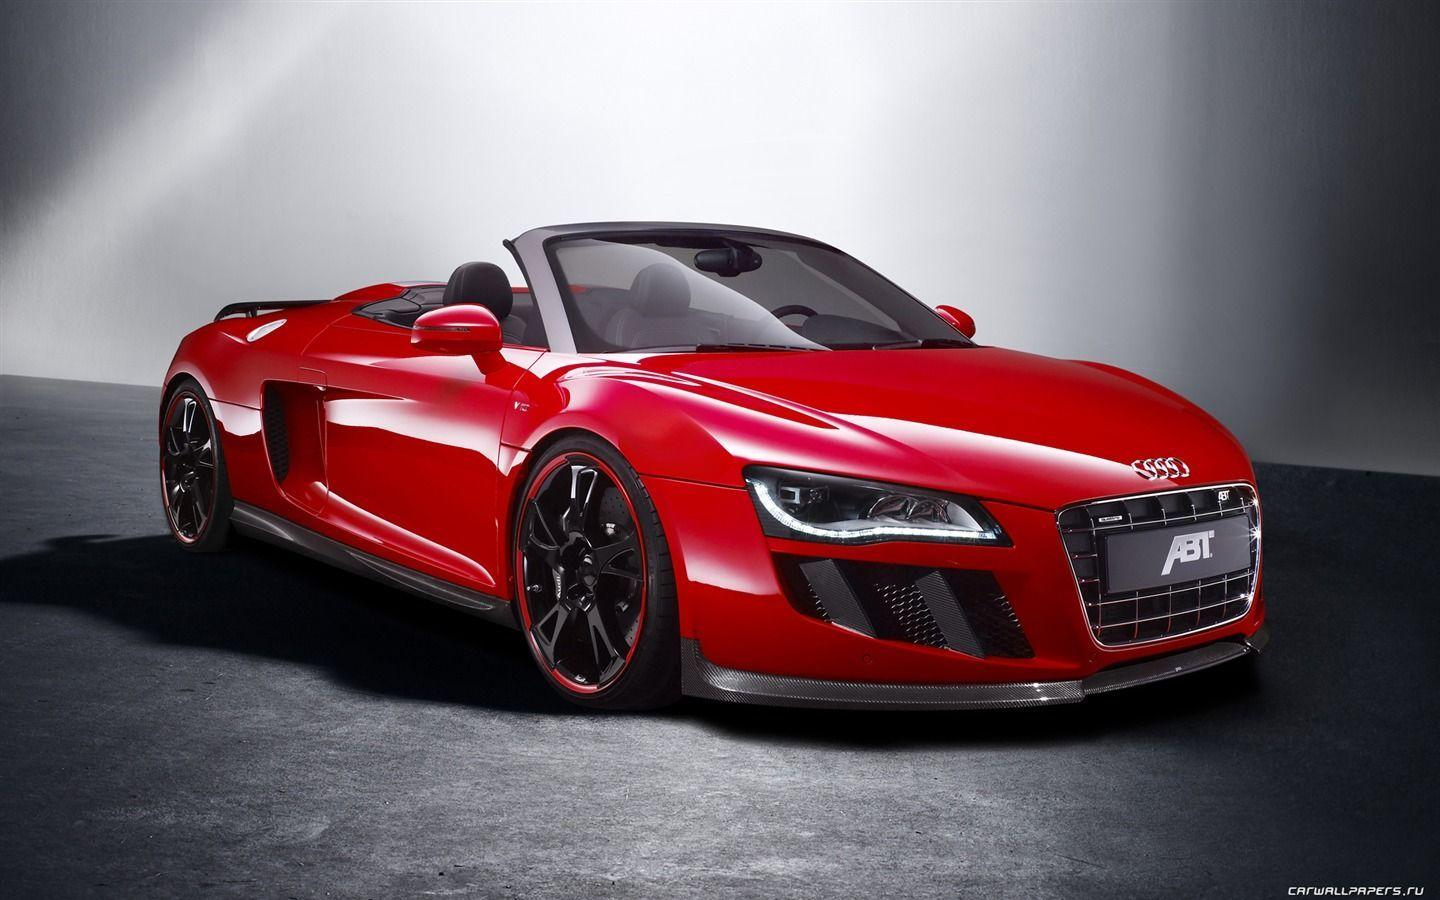 File Name Audi R8 Spyder Wallpapers Hd 1440 900 Resolution 1440 X